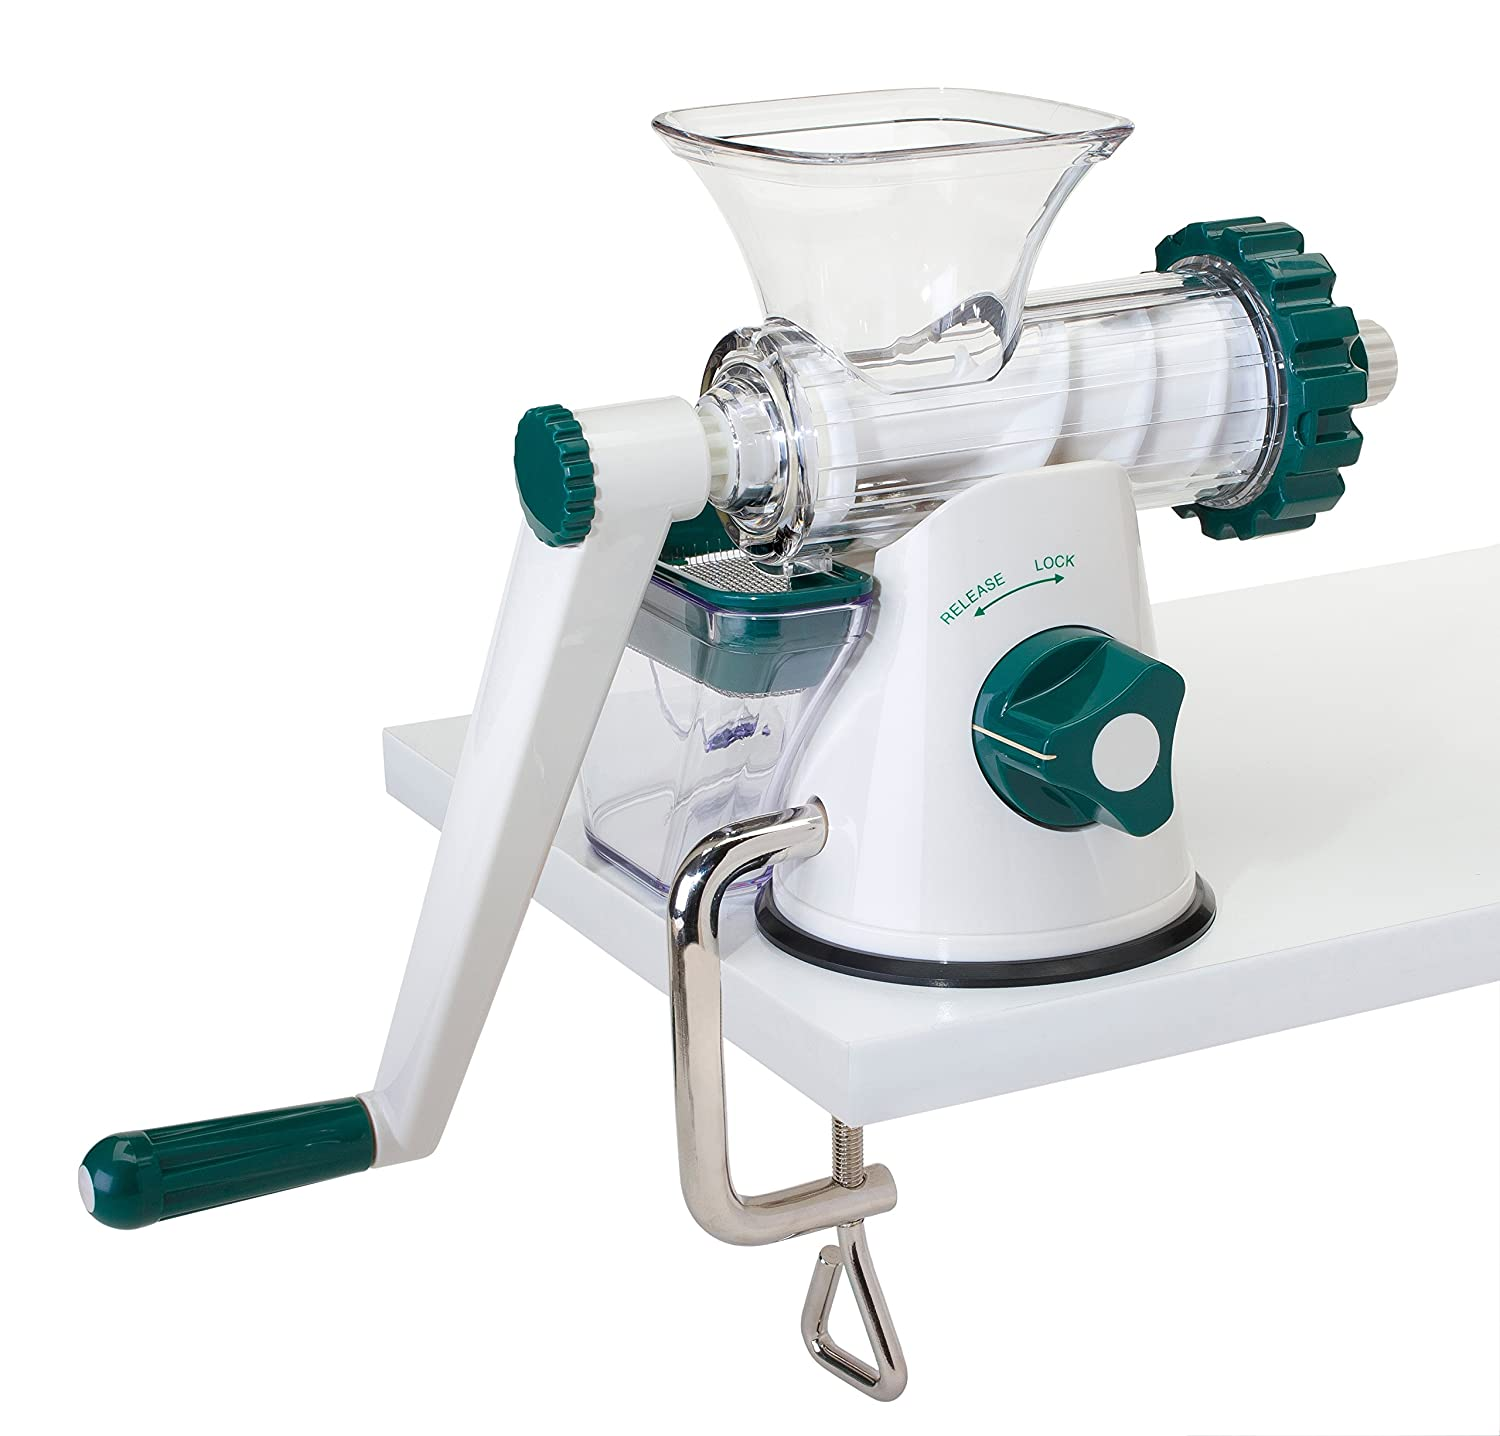 The Original Healthy Juicer (Lexen GP27) Manual Wheatgrass Juicer